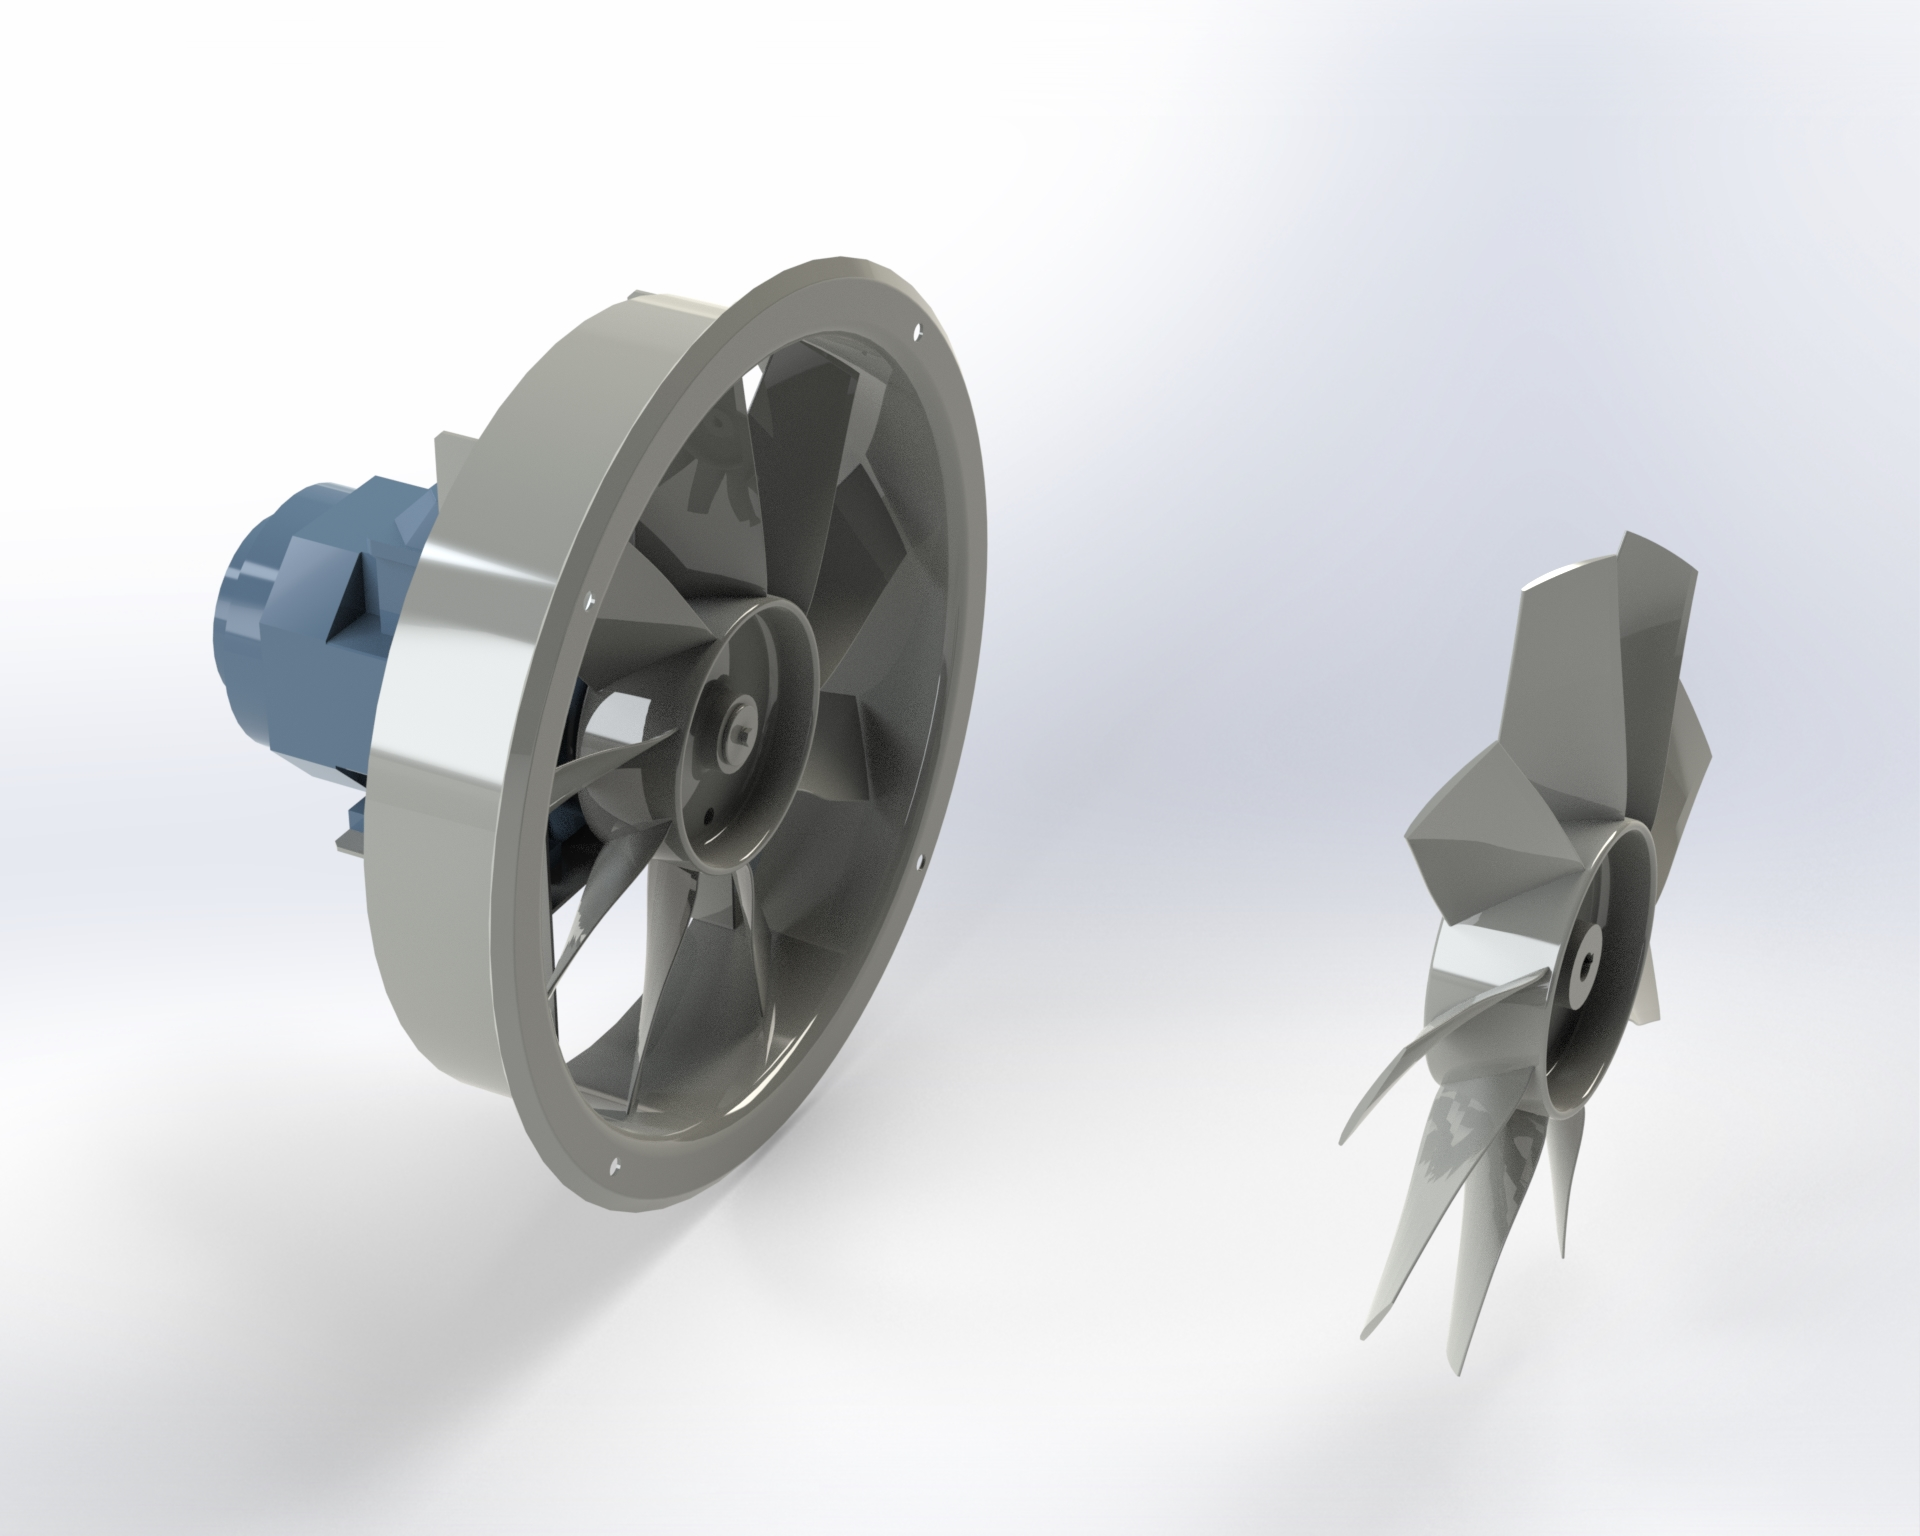 Axial-flow fan with light alloy die-cast impeller with wing-profile blades. Single flange ducting drum. Directly coupled motor.